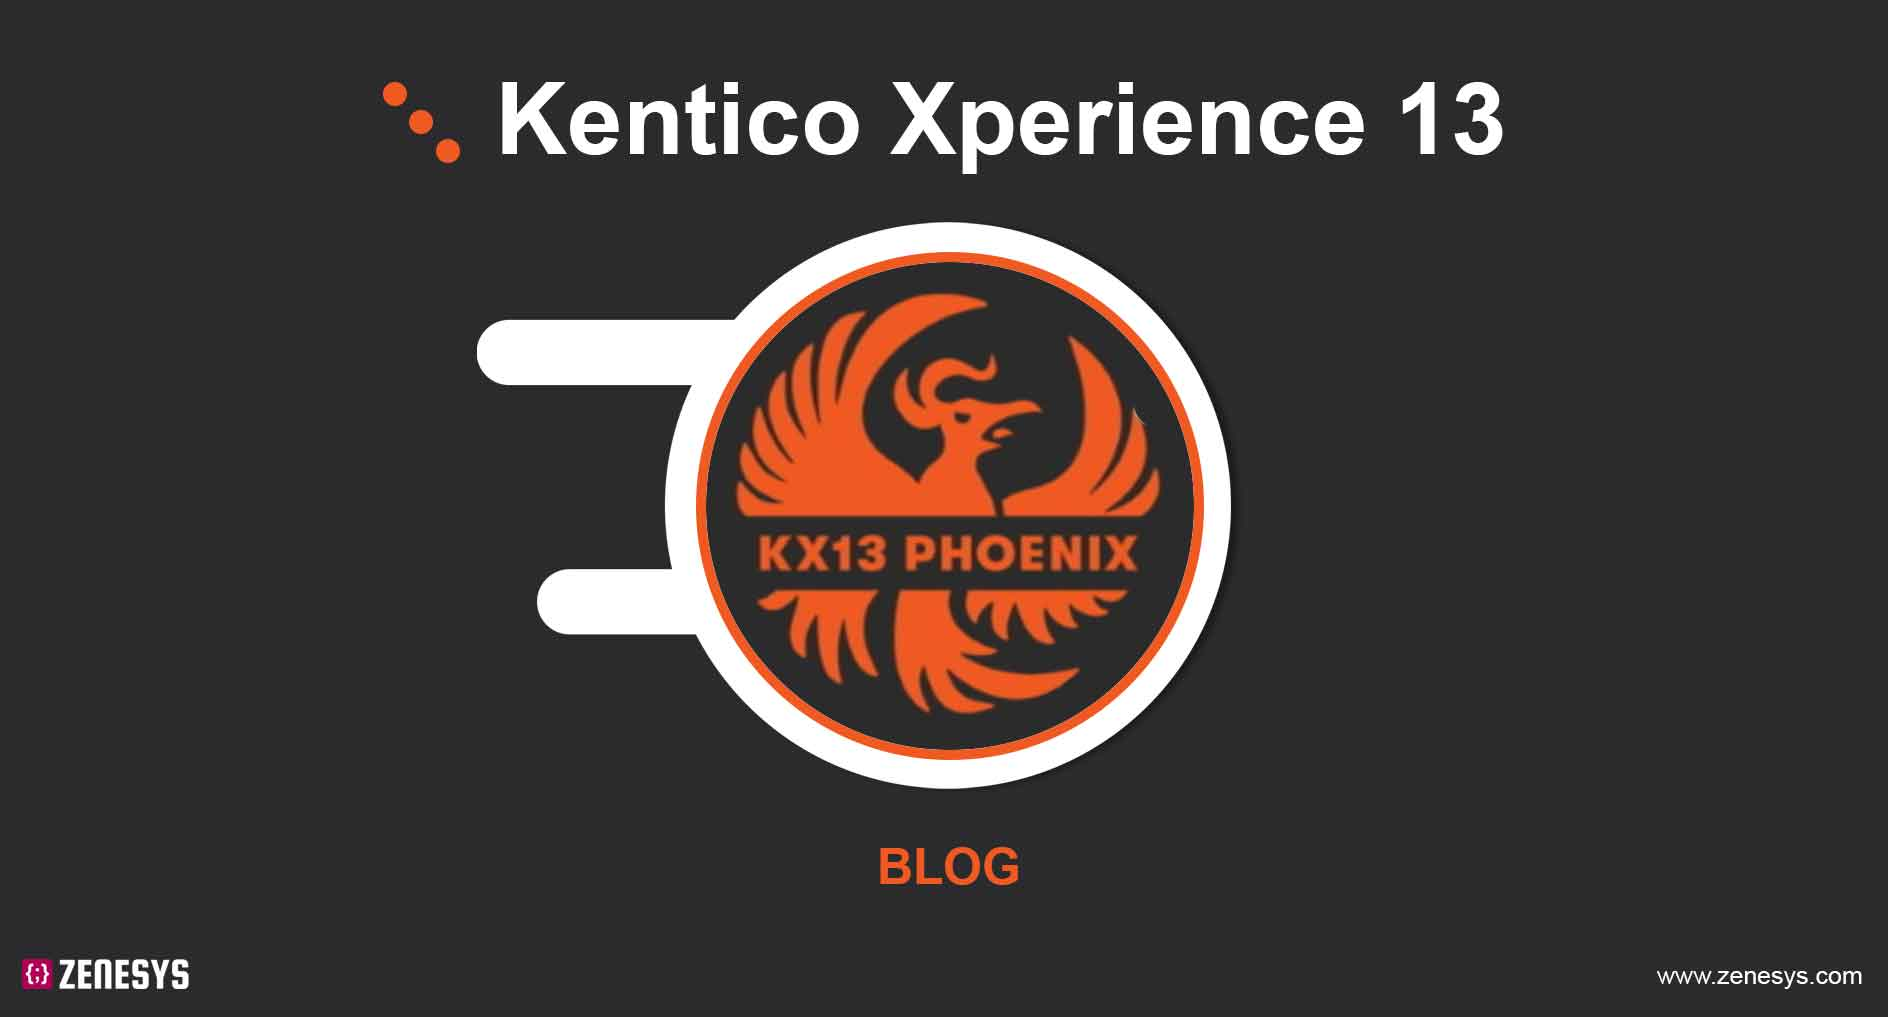 What to expect from Kentico 13?